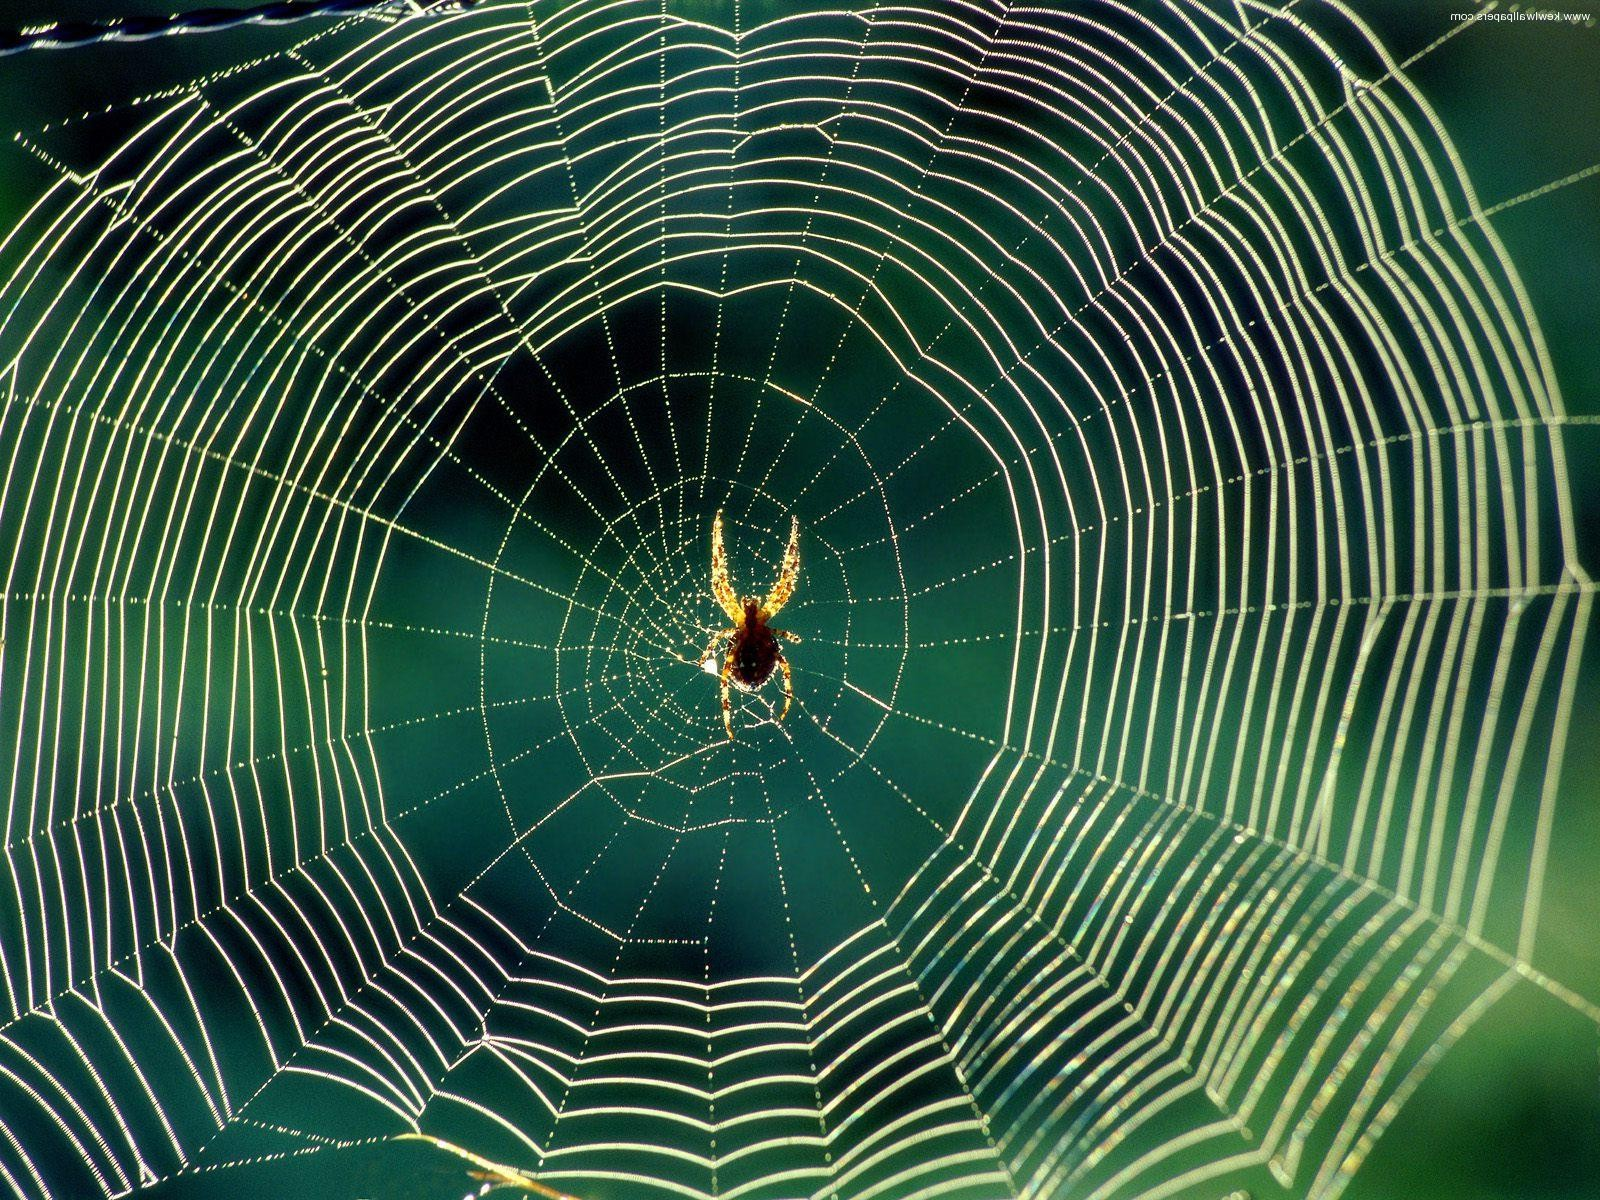 spider-recycle-silk-in-web-for-reuse-again